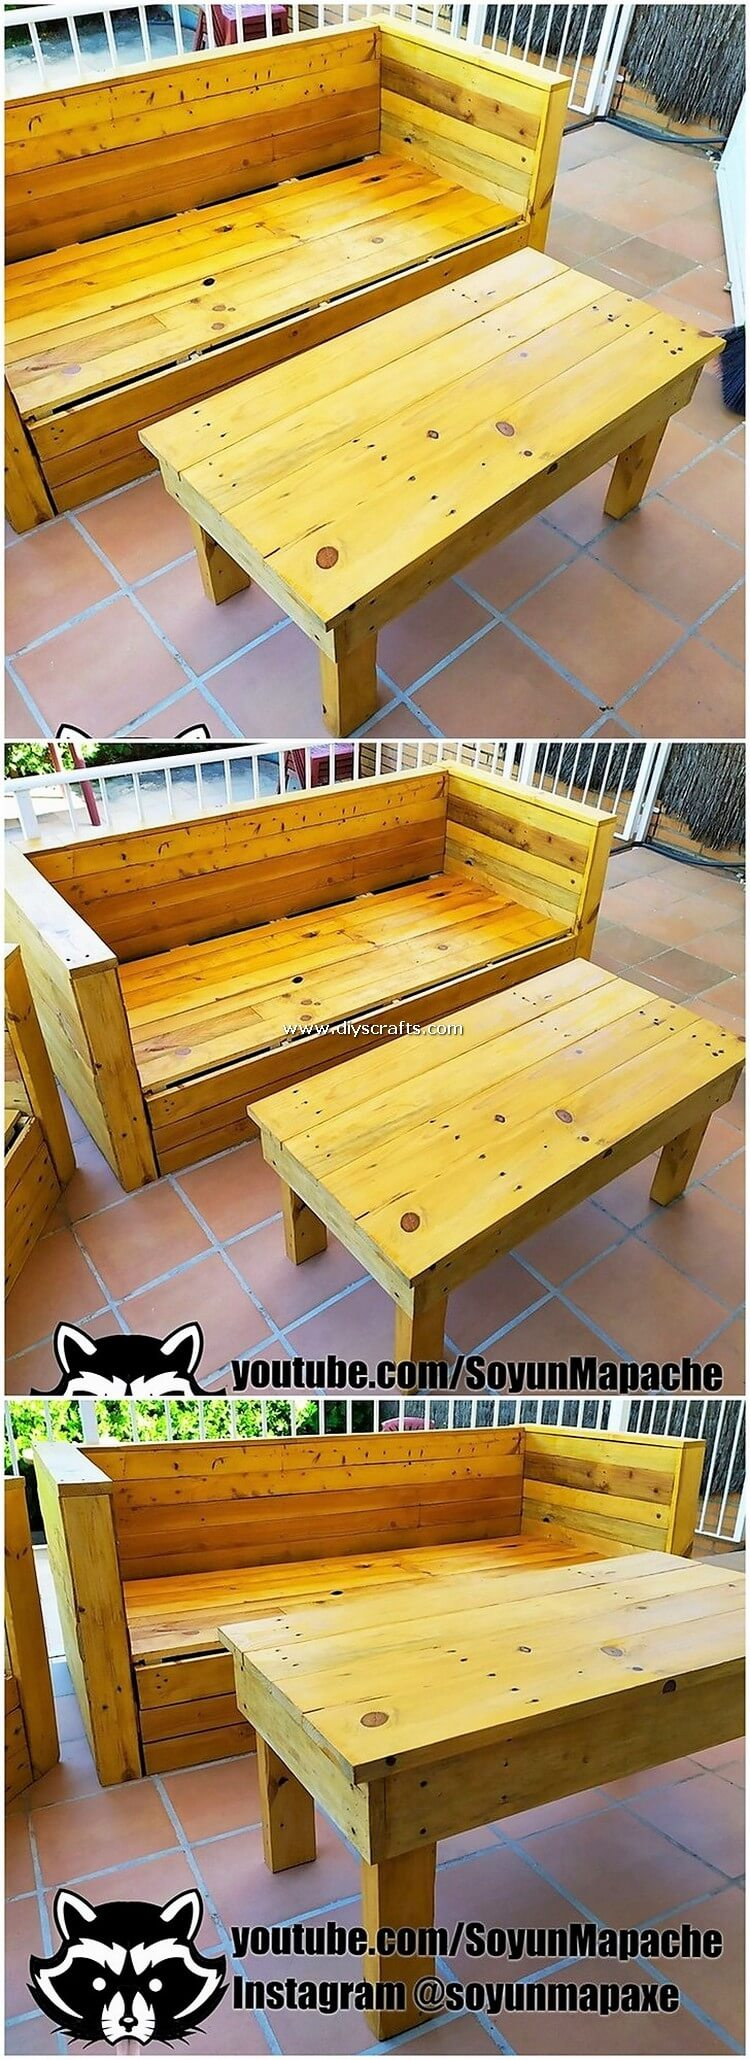 Wood-Pallet-Bench-and-Table